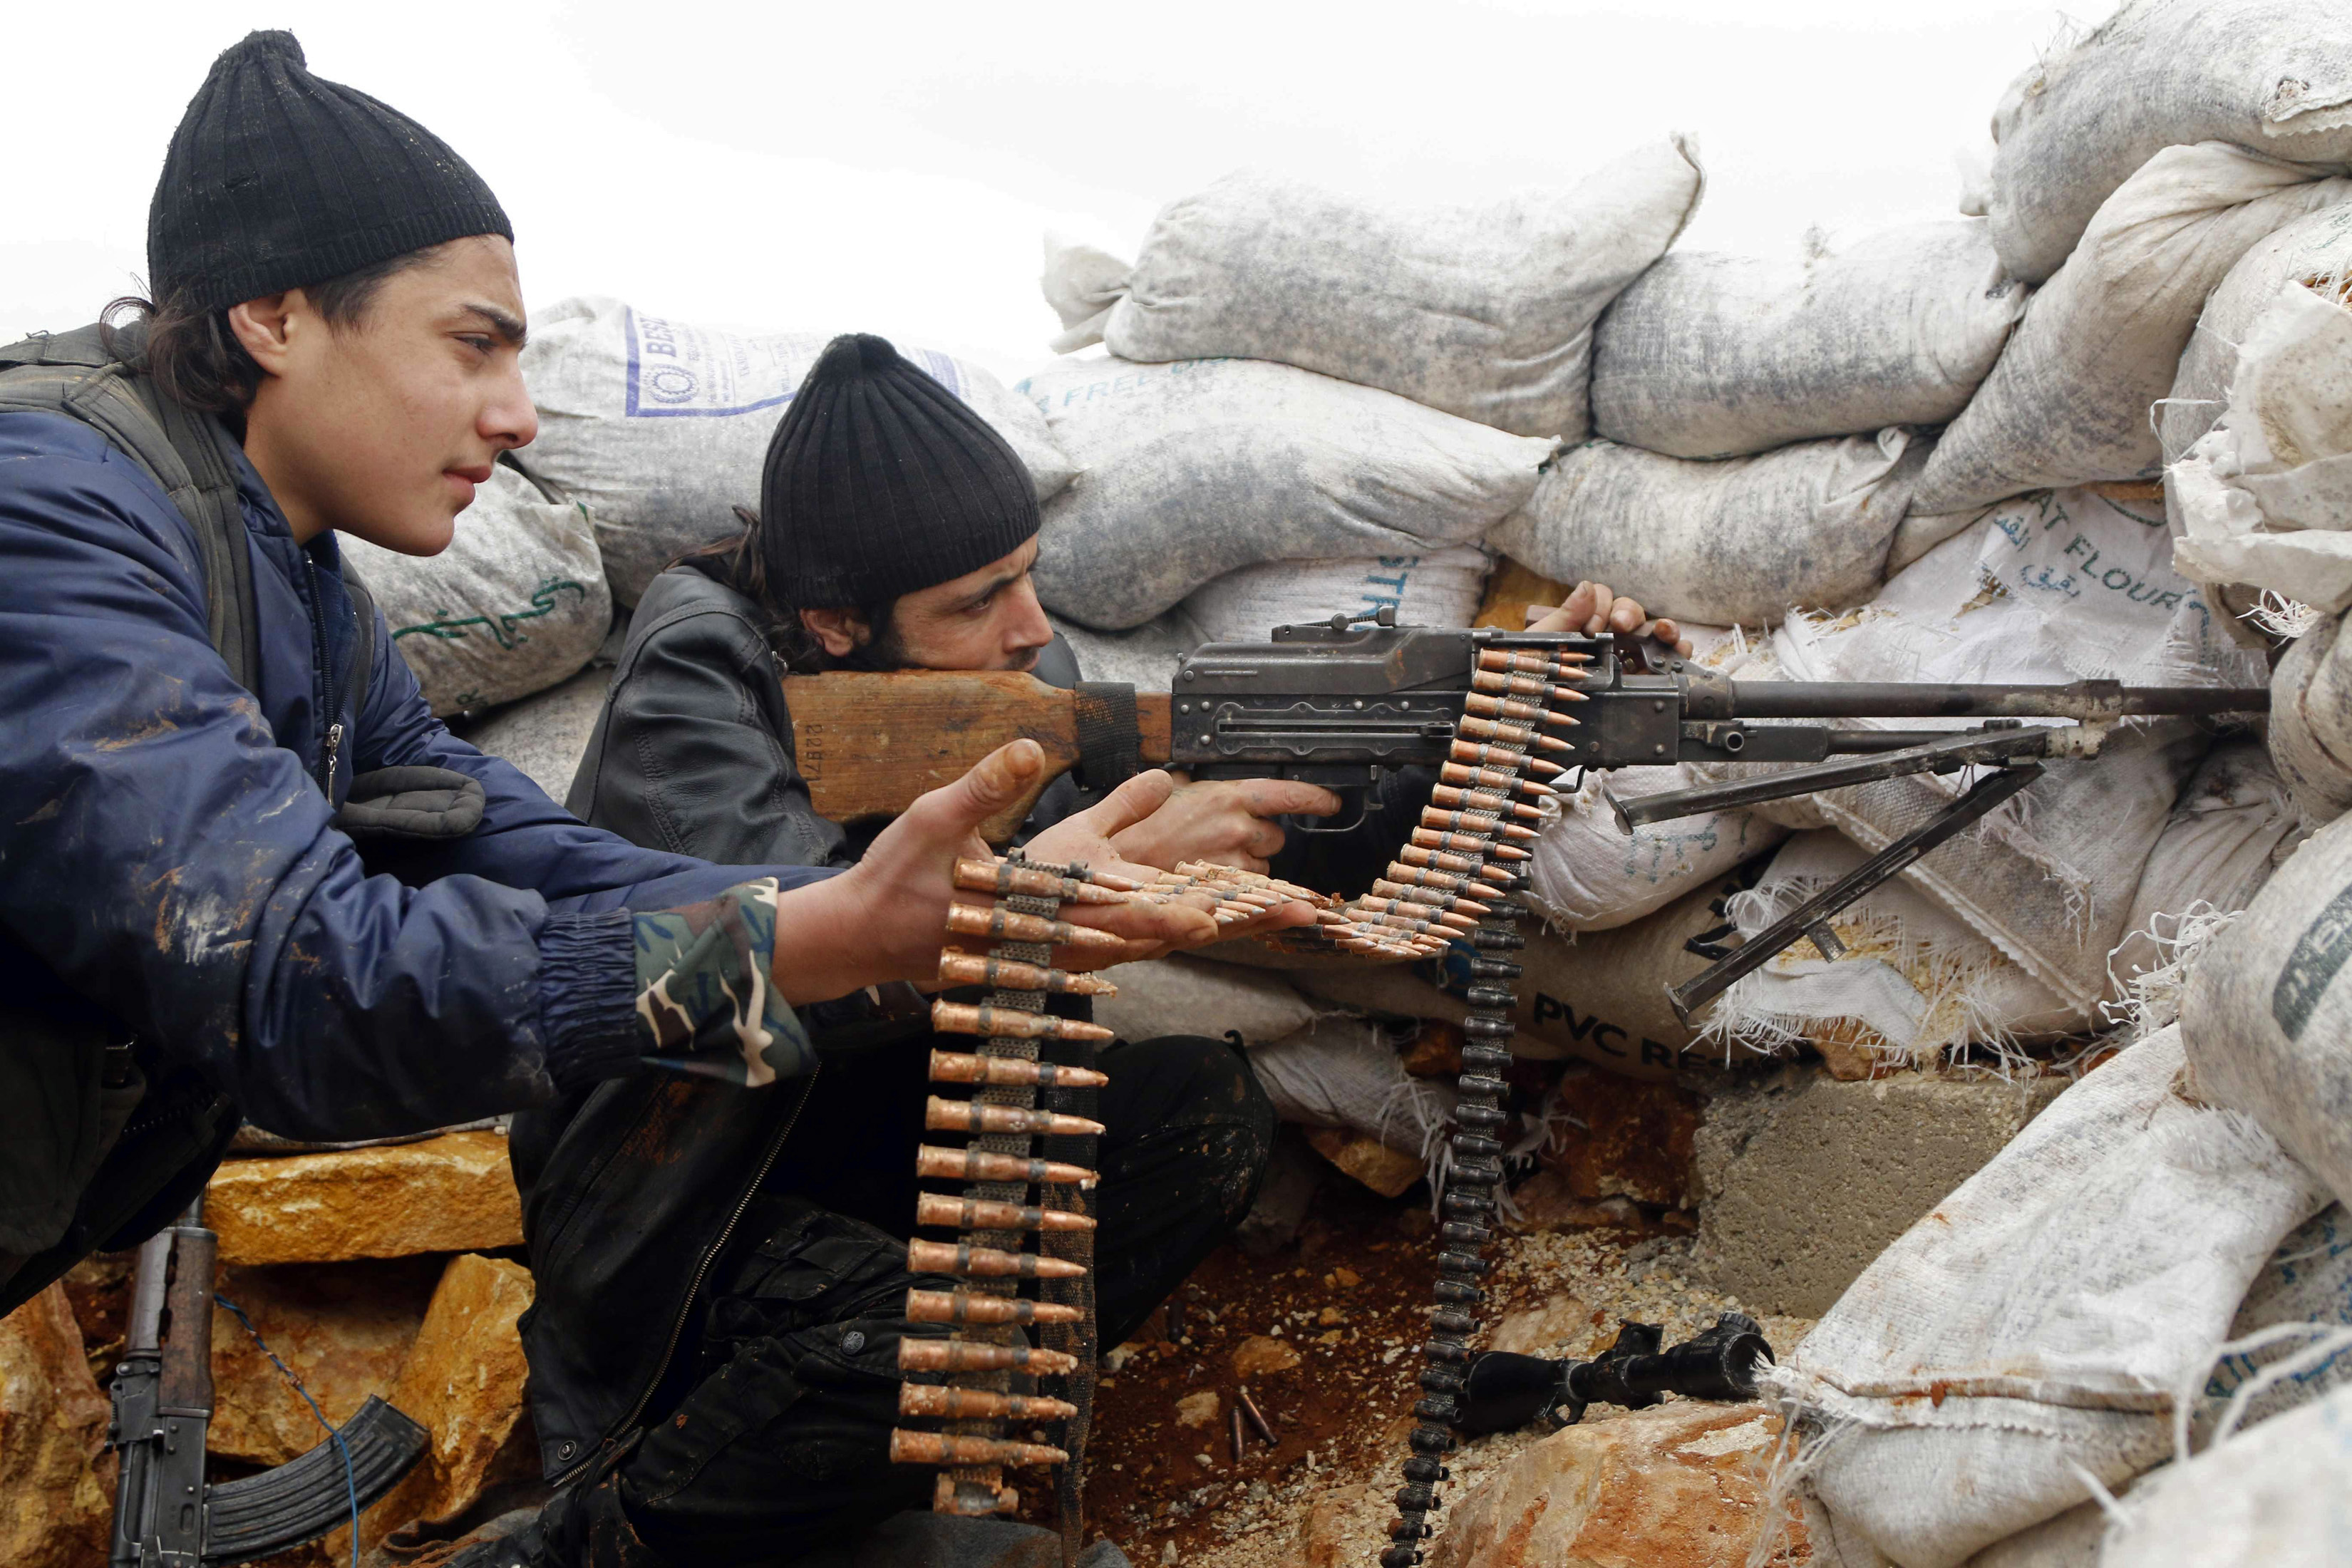 Rebel fighters fire a weapon on the al-Breij frontline, after what they said was an advance by them in the Manasher al-Hajr area where the forces of Syrian President Bashar Assad were stationed in Aleppo, Syria, on Jan. 7, 2015